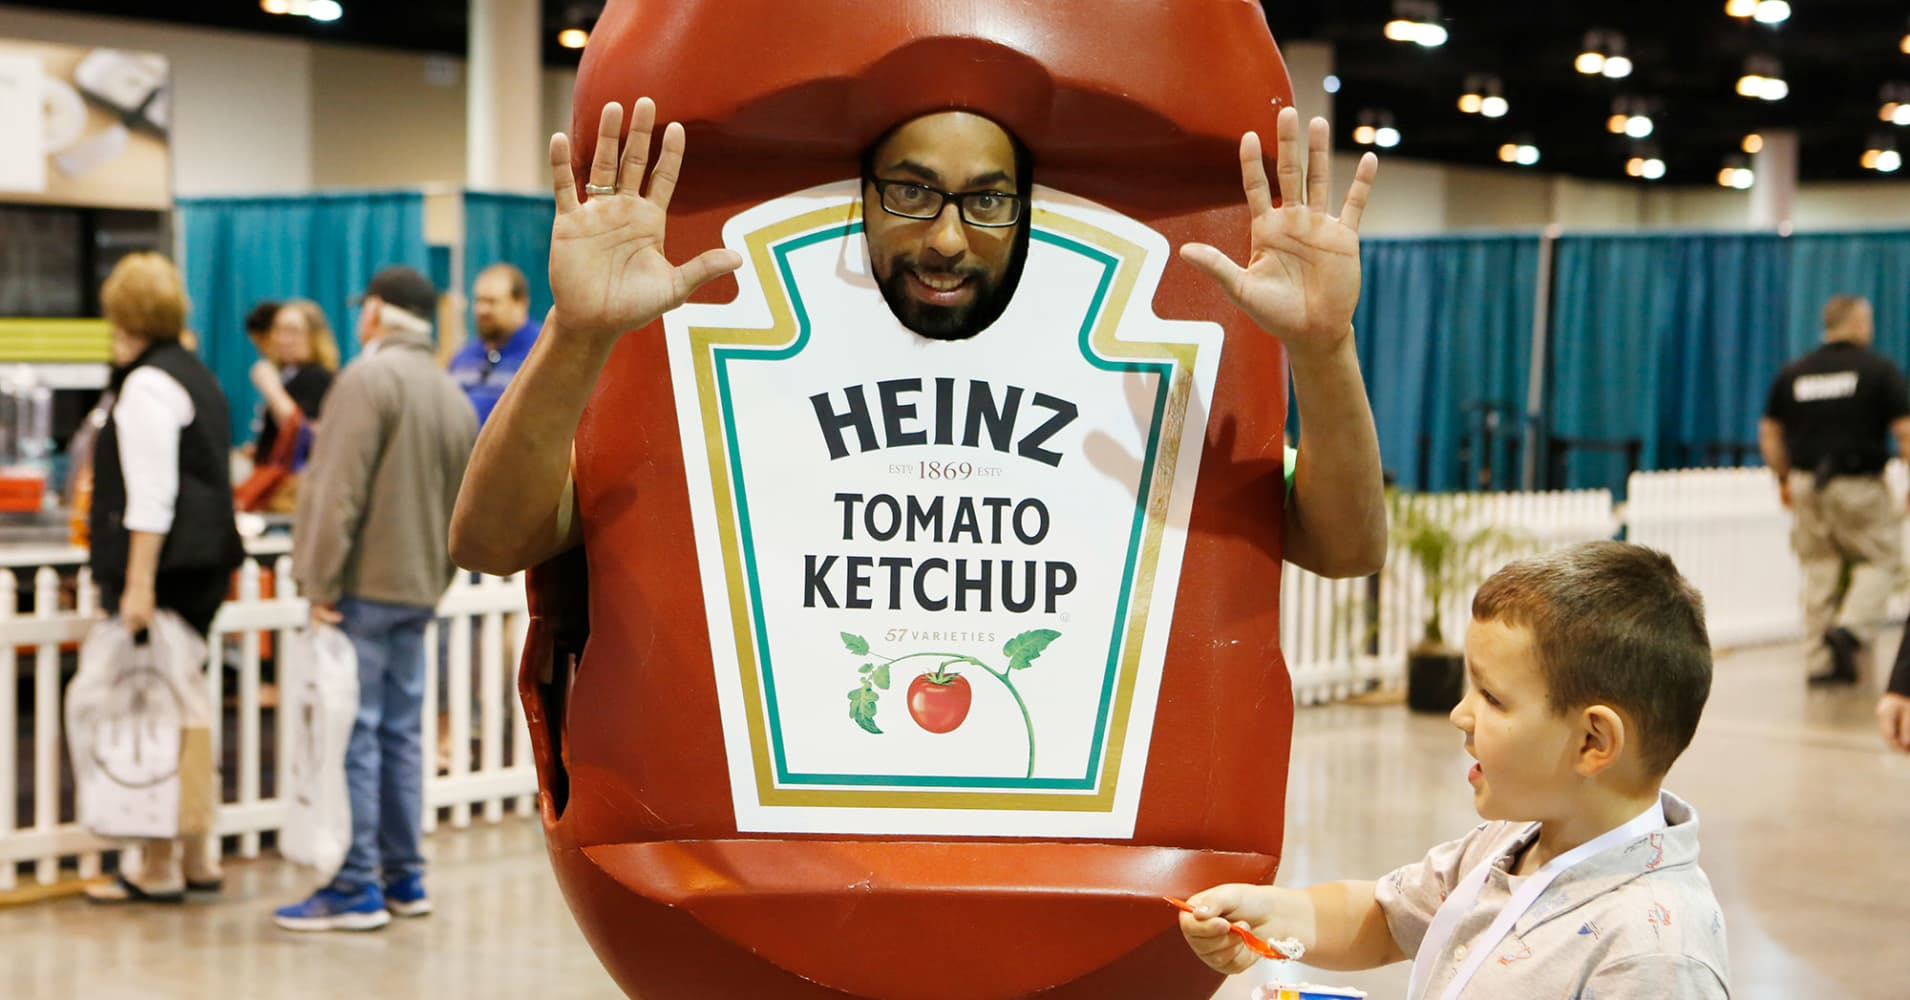 A Heinz Ketchup mascot at the 2018 Berkshire Hathaway Annual Shareholder's Meeting in Omaha, NE.